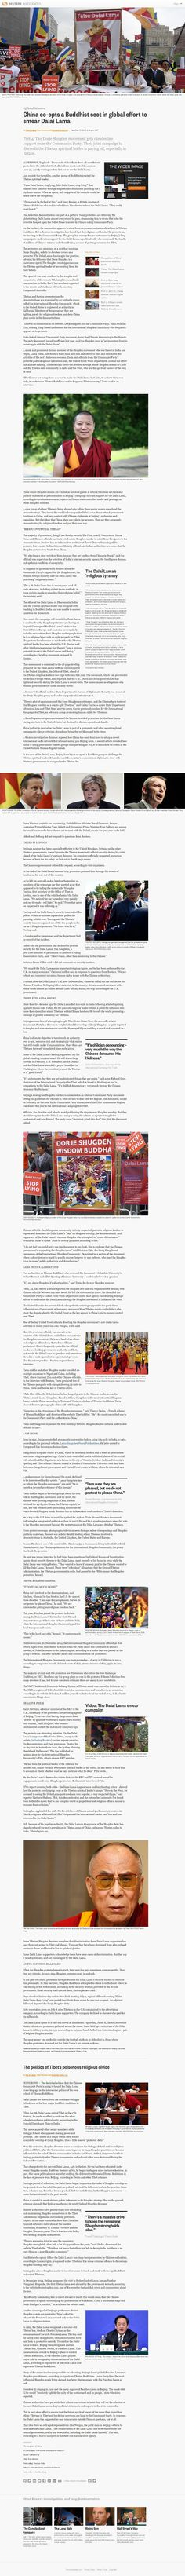 Reuters Anti-Dorje Shugden Report Backfires.  #buddhism #tibetan #dalailama #tibetanbuddhism #dharma #tibet #freetibet #tsemtulku #tsemrinpoche #kechara #wisdom #healing #protection #blessing #karma #india #dorjeshugden #buddha #puja #prayer #china #reuters #news